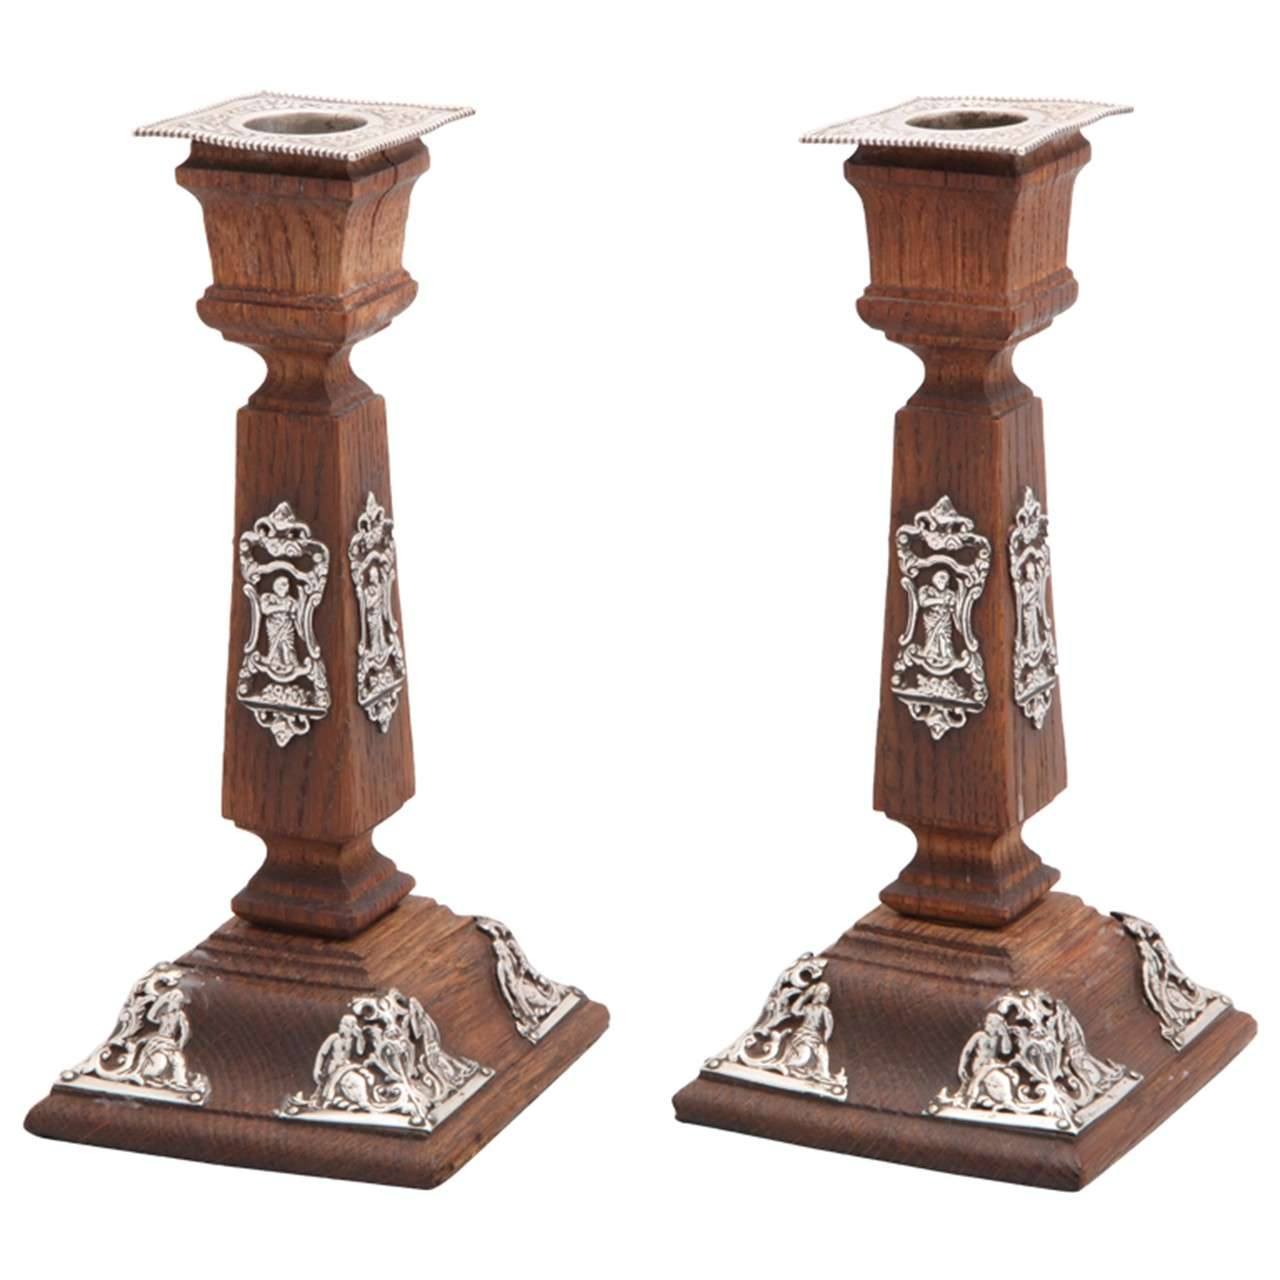 Victorian Sterling Silver-Mounted Oak Candlesticks